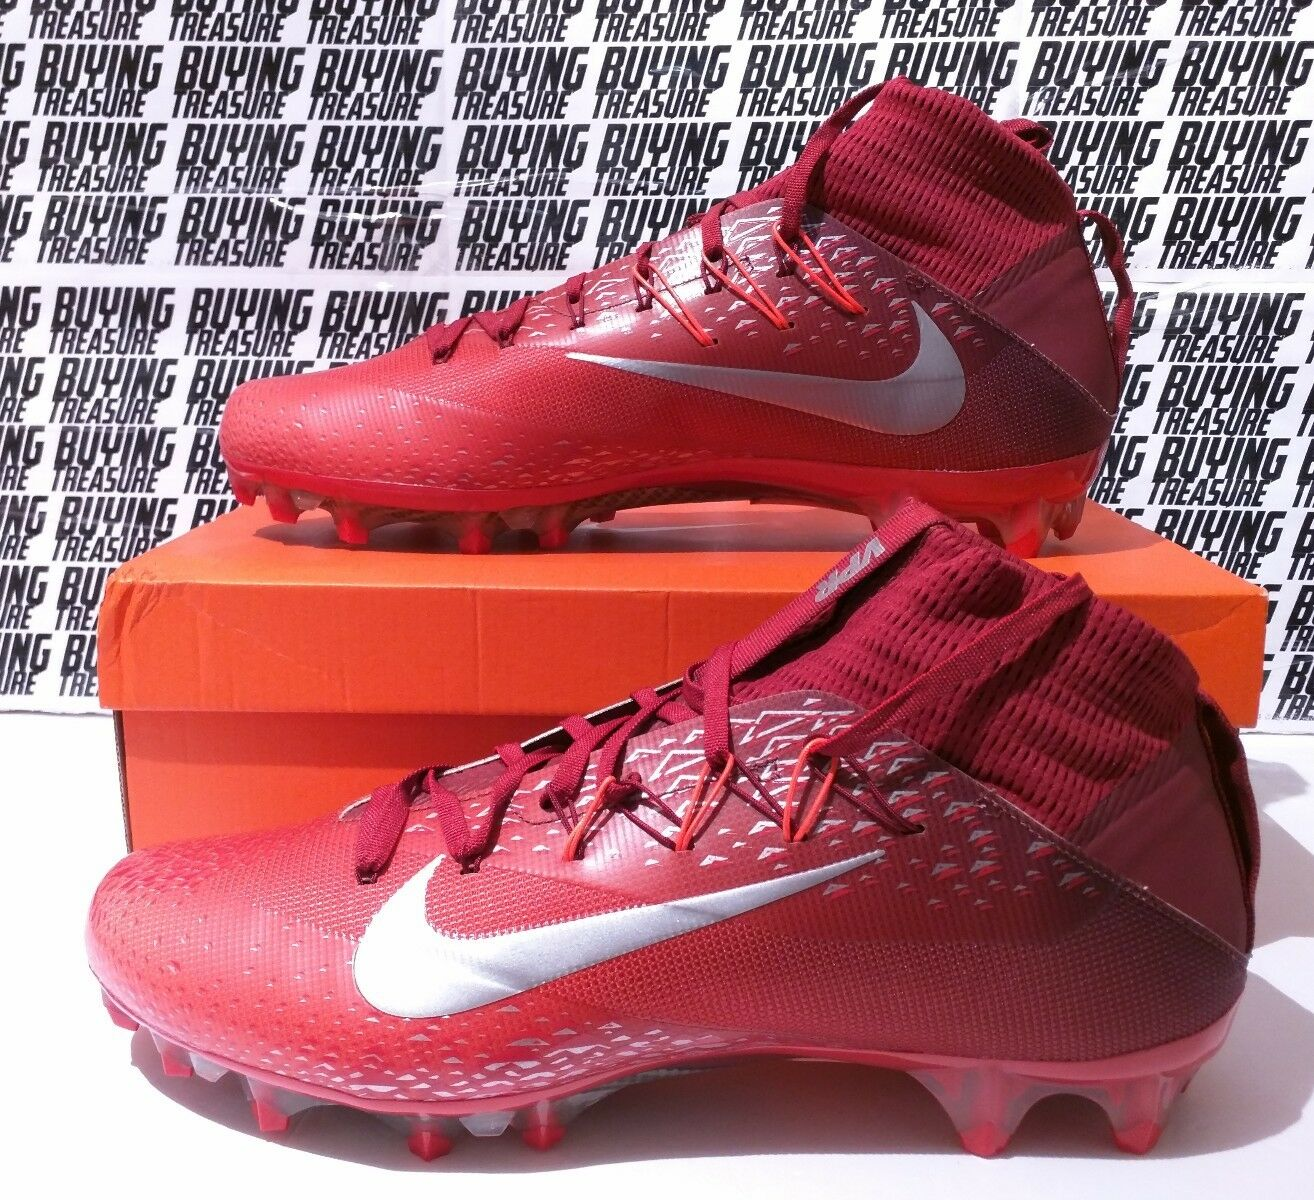 Nike Vapor Untouchable Football Cleats 824470-608 VPR Flyknit Red Burgundy Sz 12 The latest discount shoes for men and women